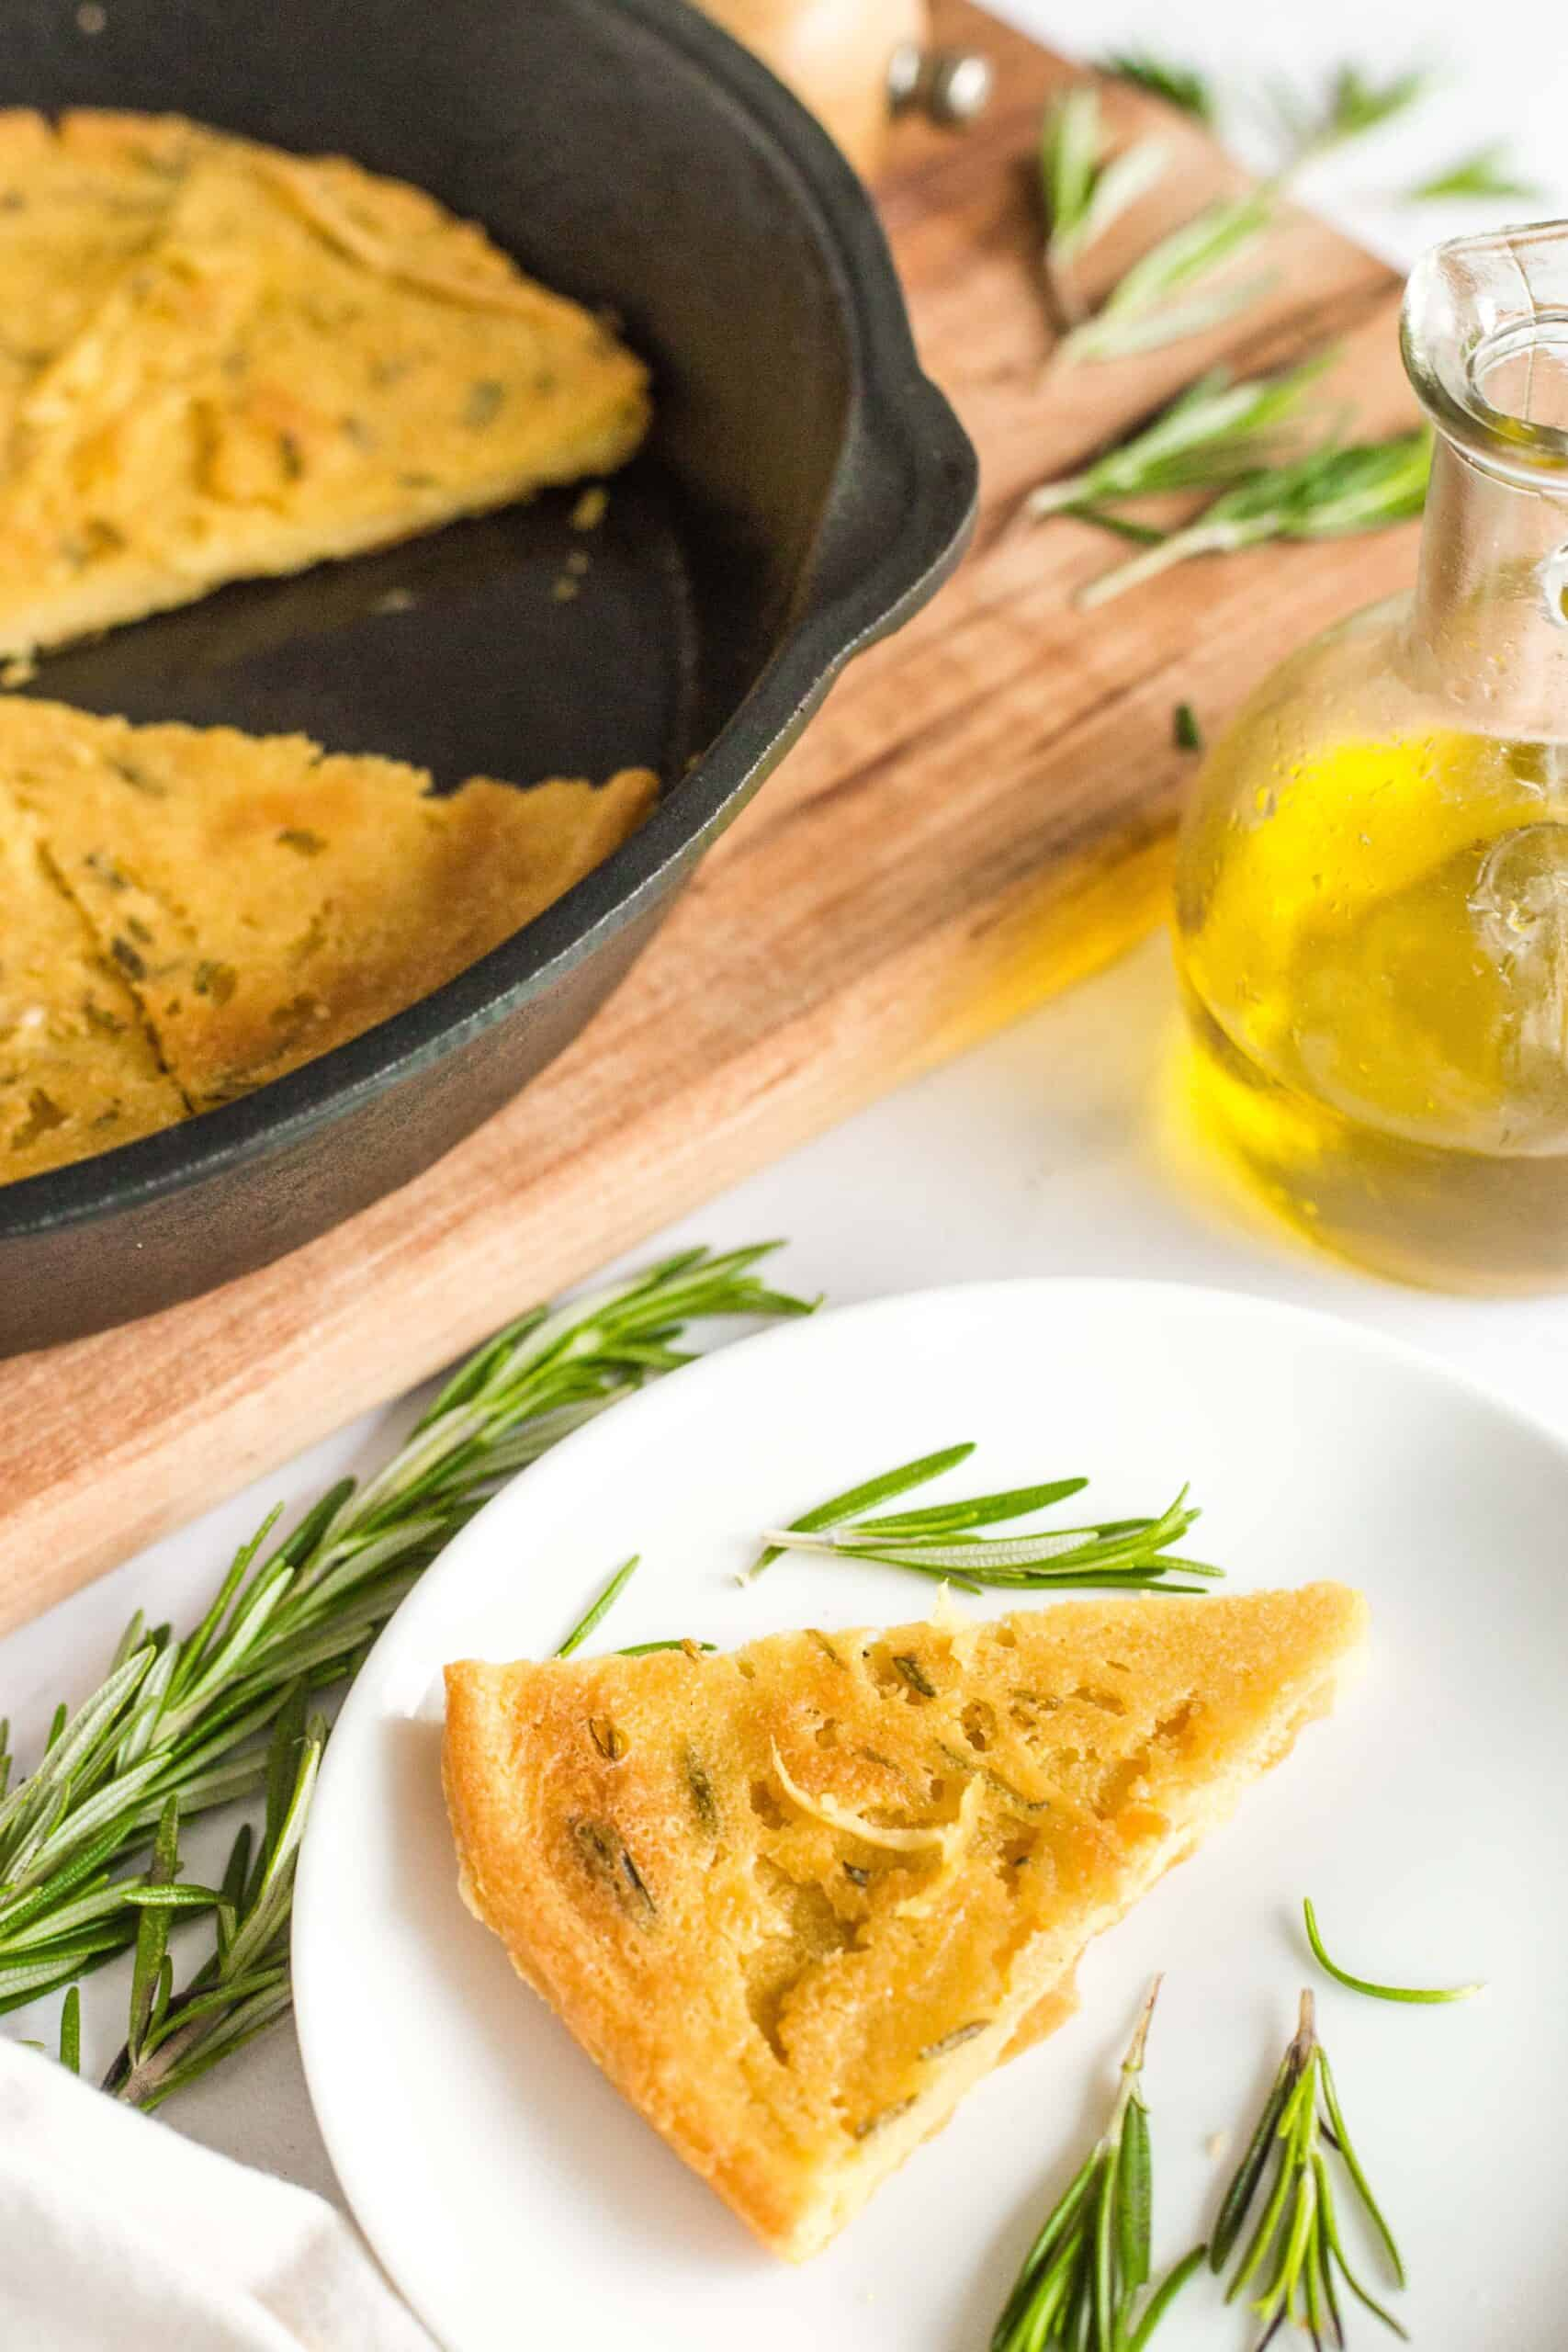 A slice of chickpea flatbread and fresh rosemary leaves on a small plate.